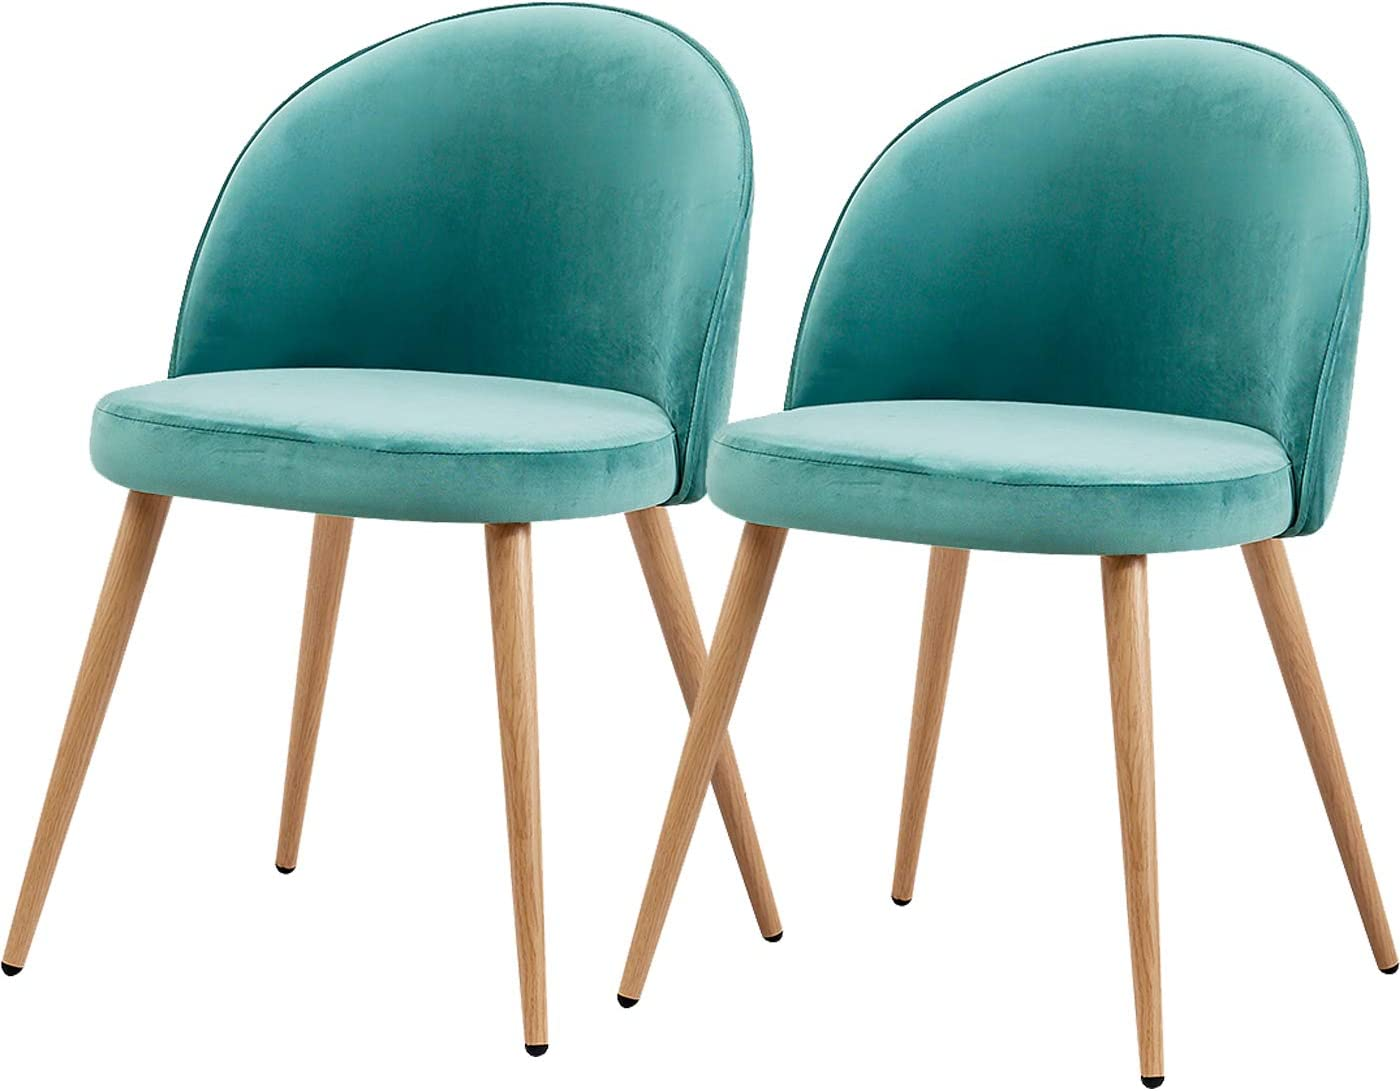 TONVISION Velvet Occasional Dining Chairs Cozy Cushioned Seat Wooden Effect  Metal Legs Small Living Room Bedroom Armchair,8 Green